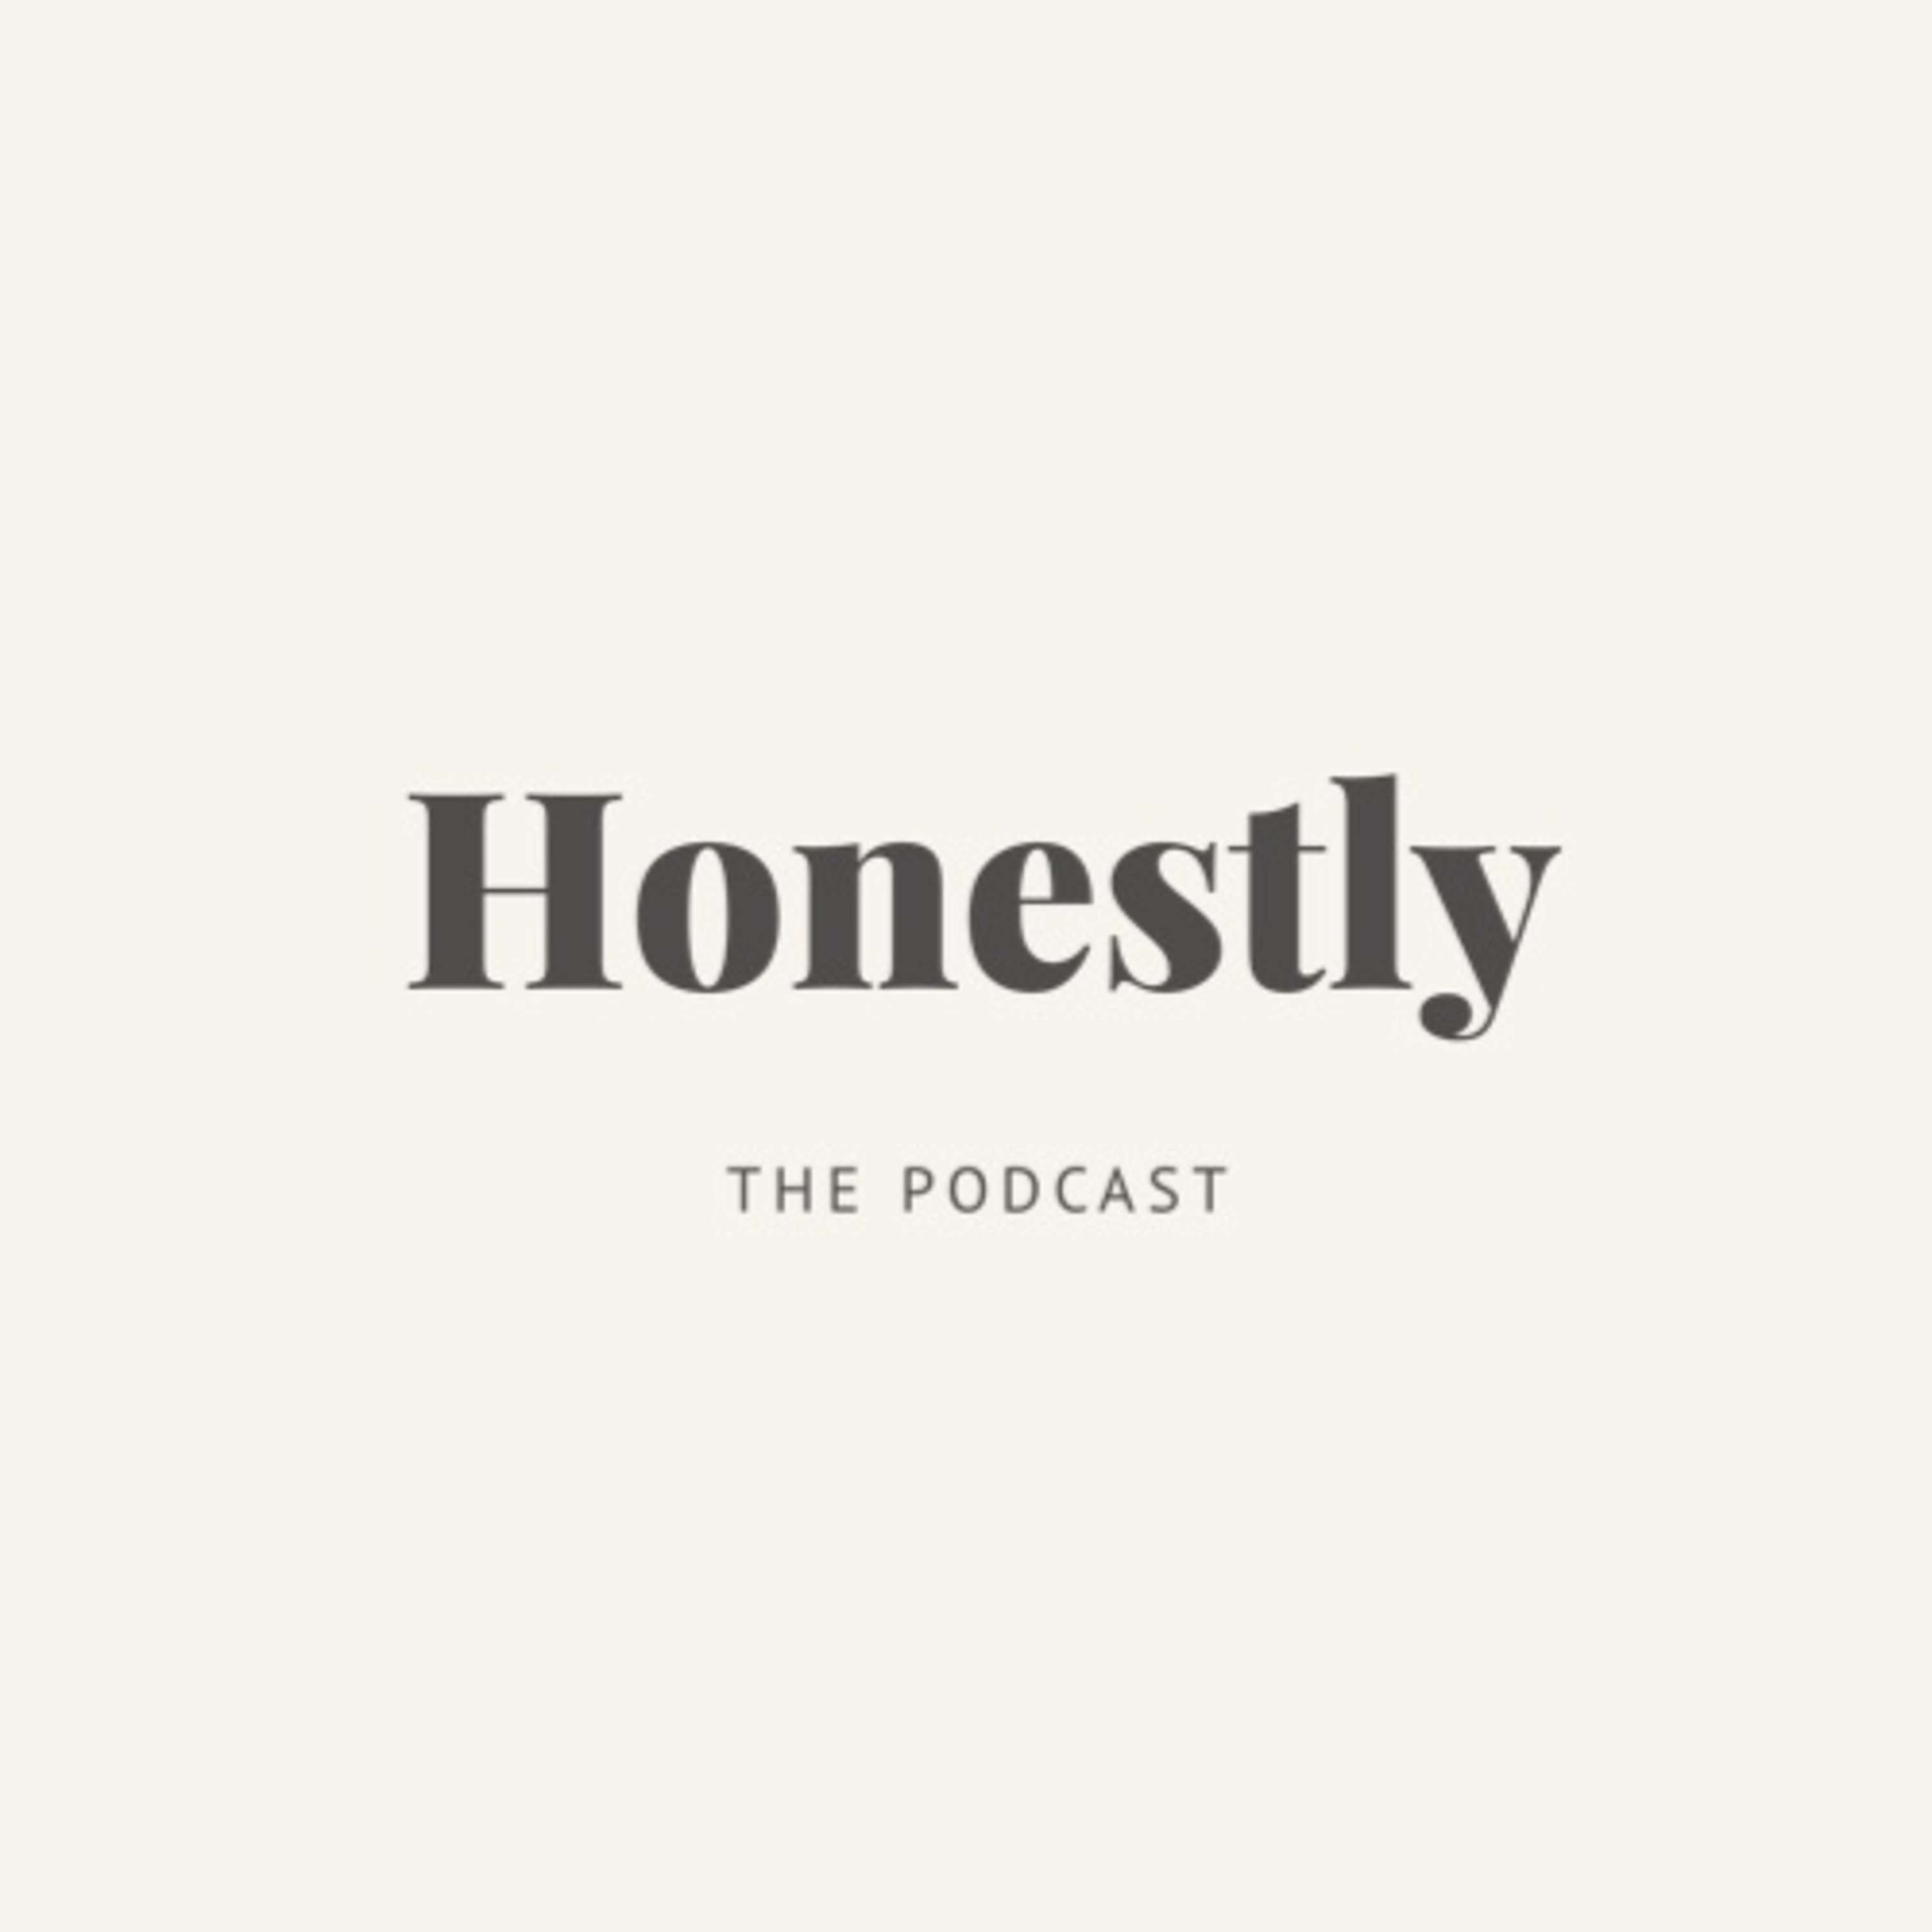 Honestly, the podcast.